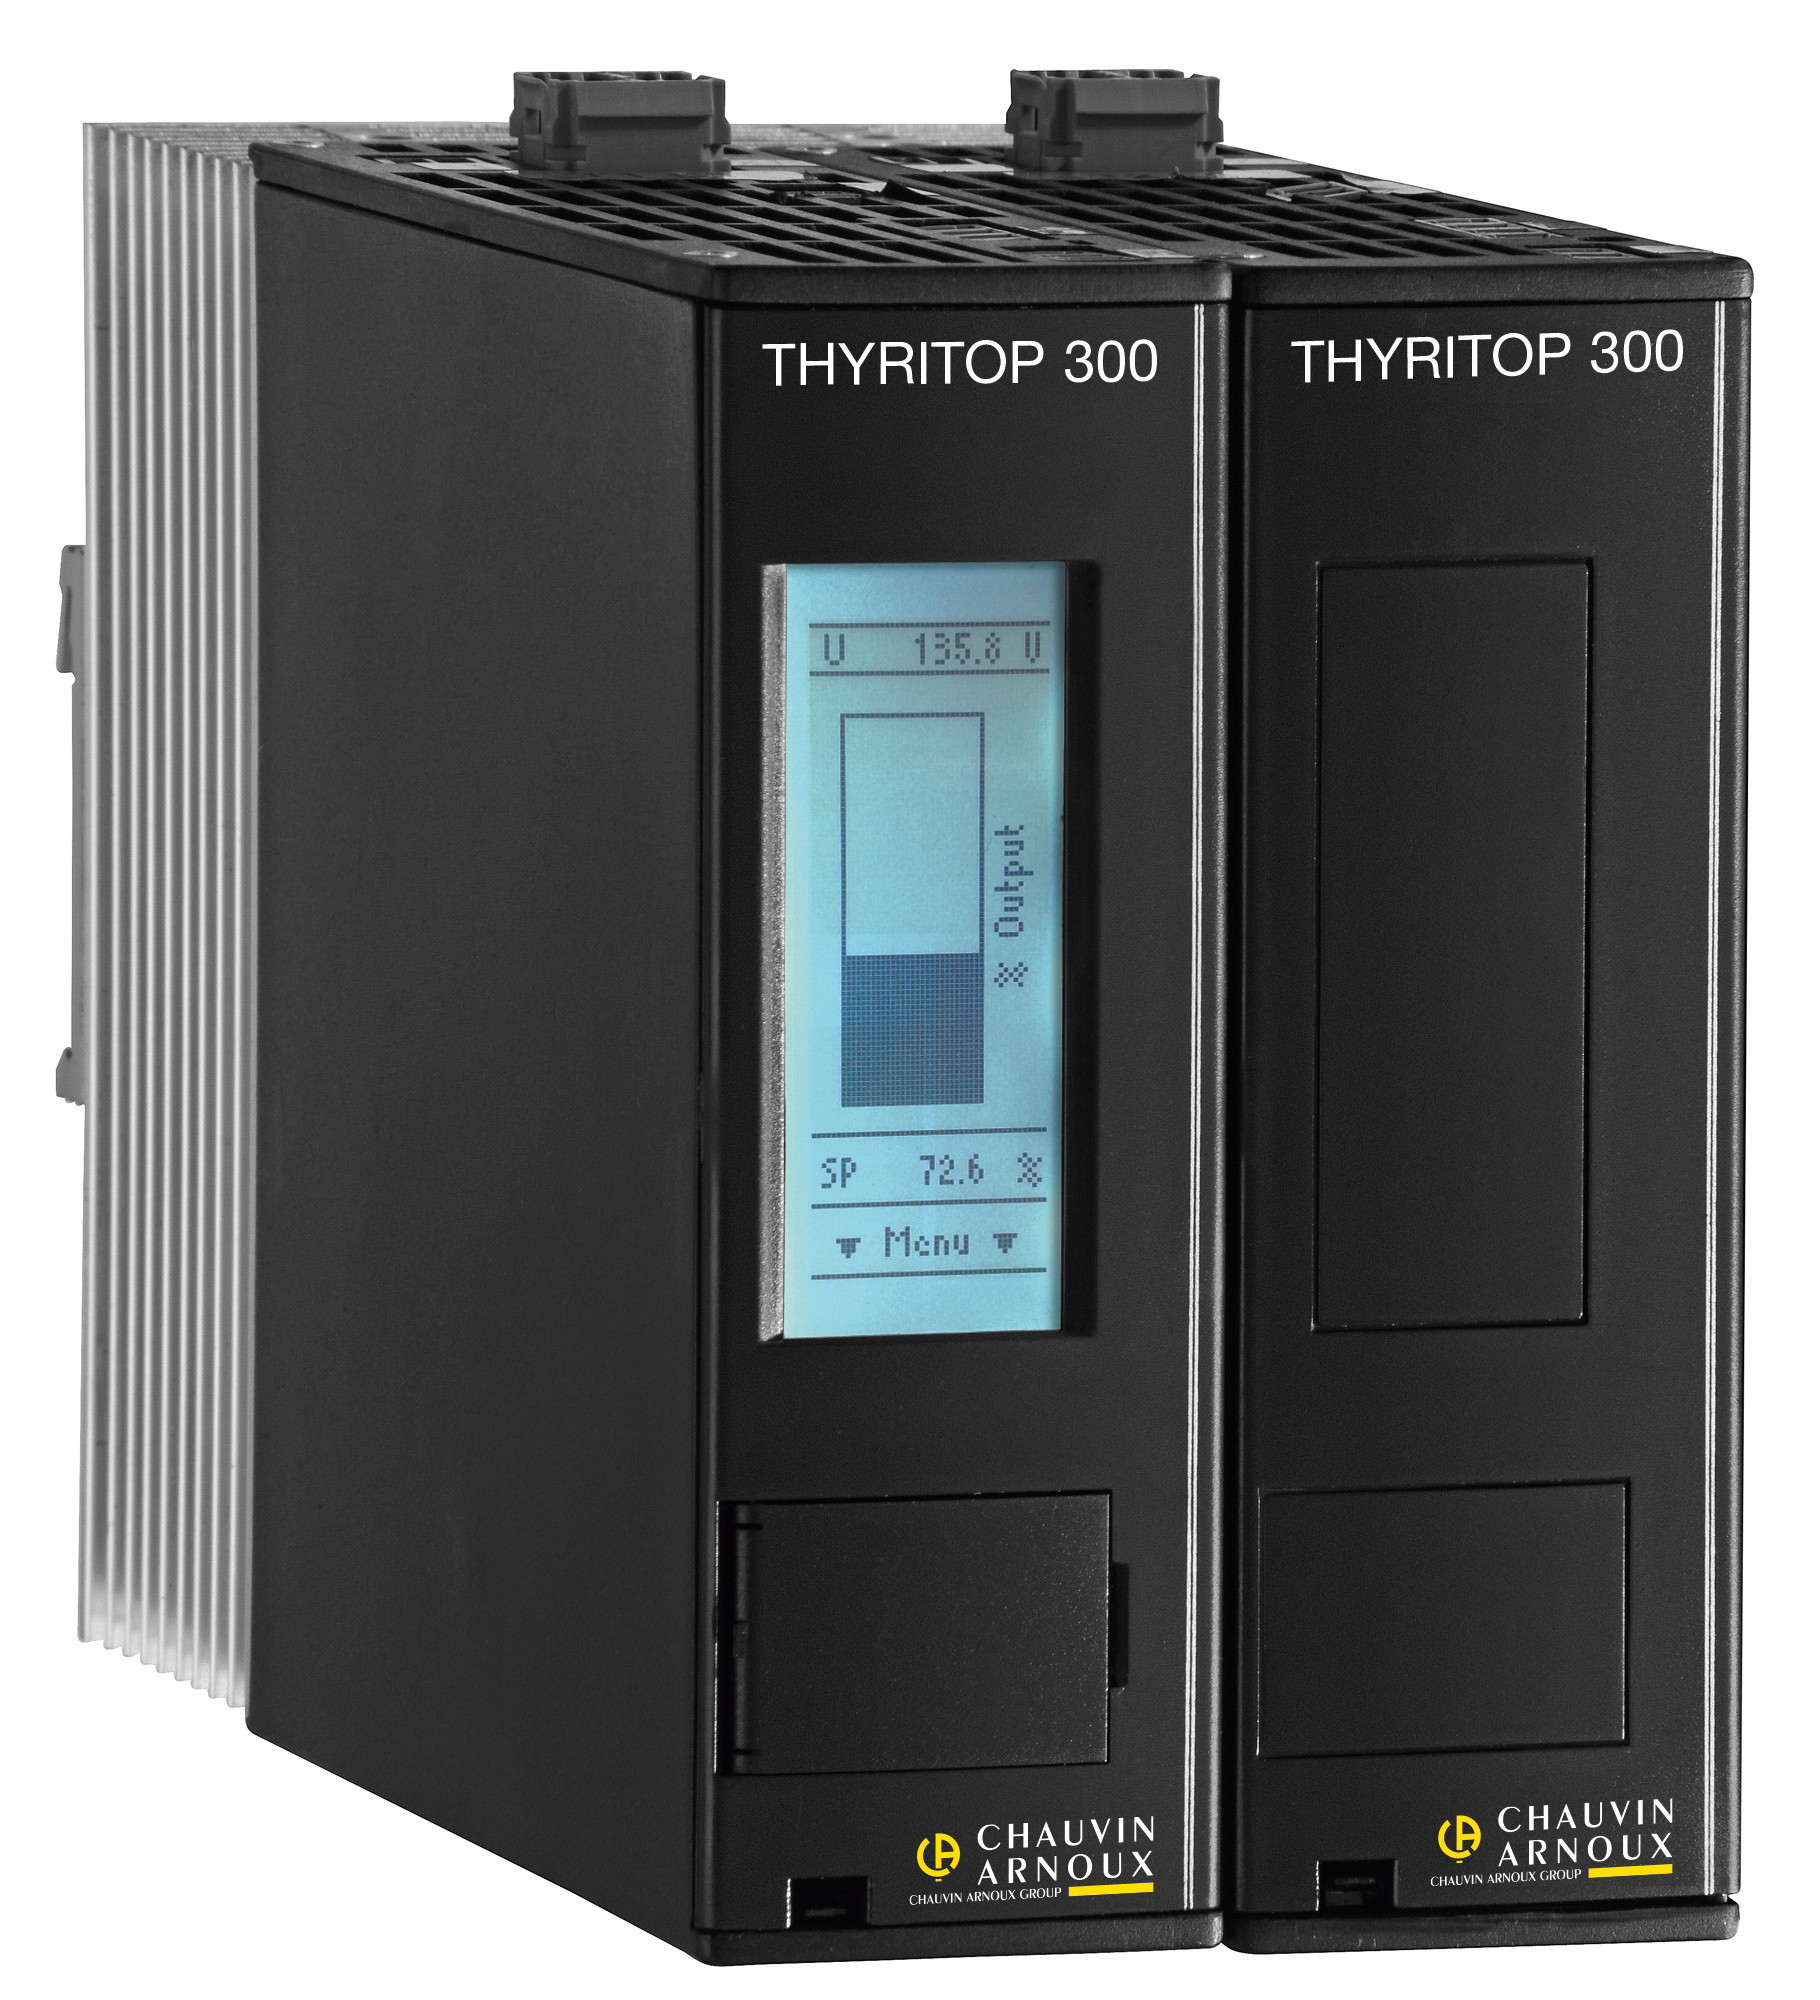 Thyritop 300, Pyrocontrole power controllers